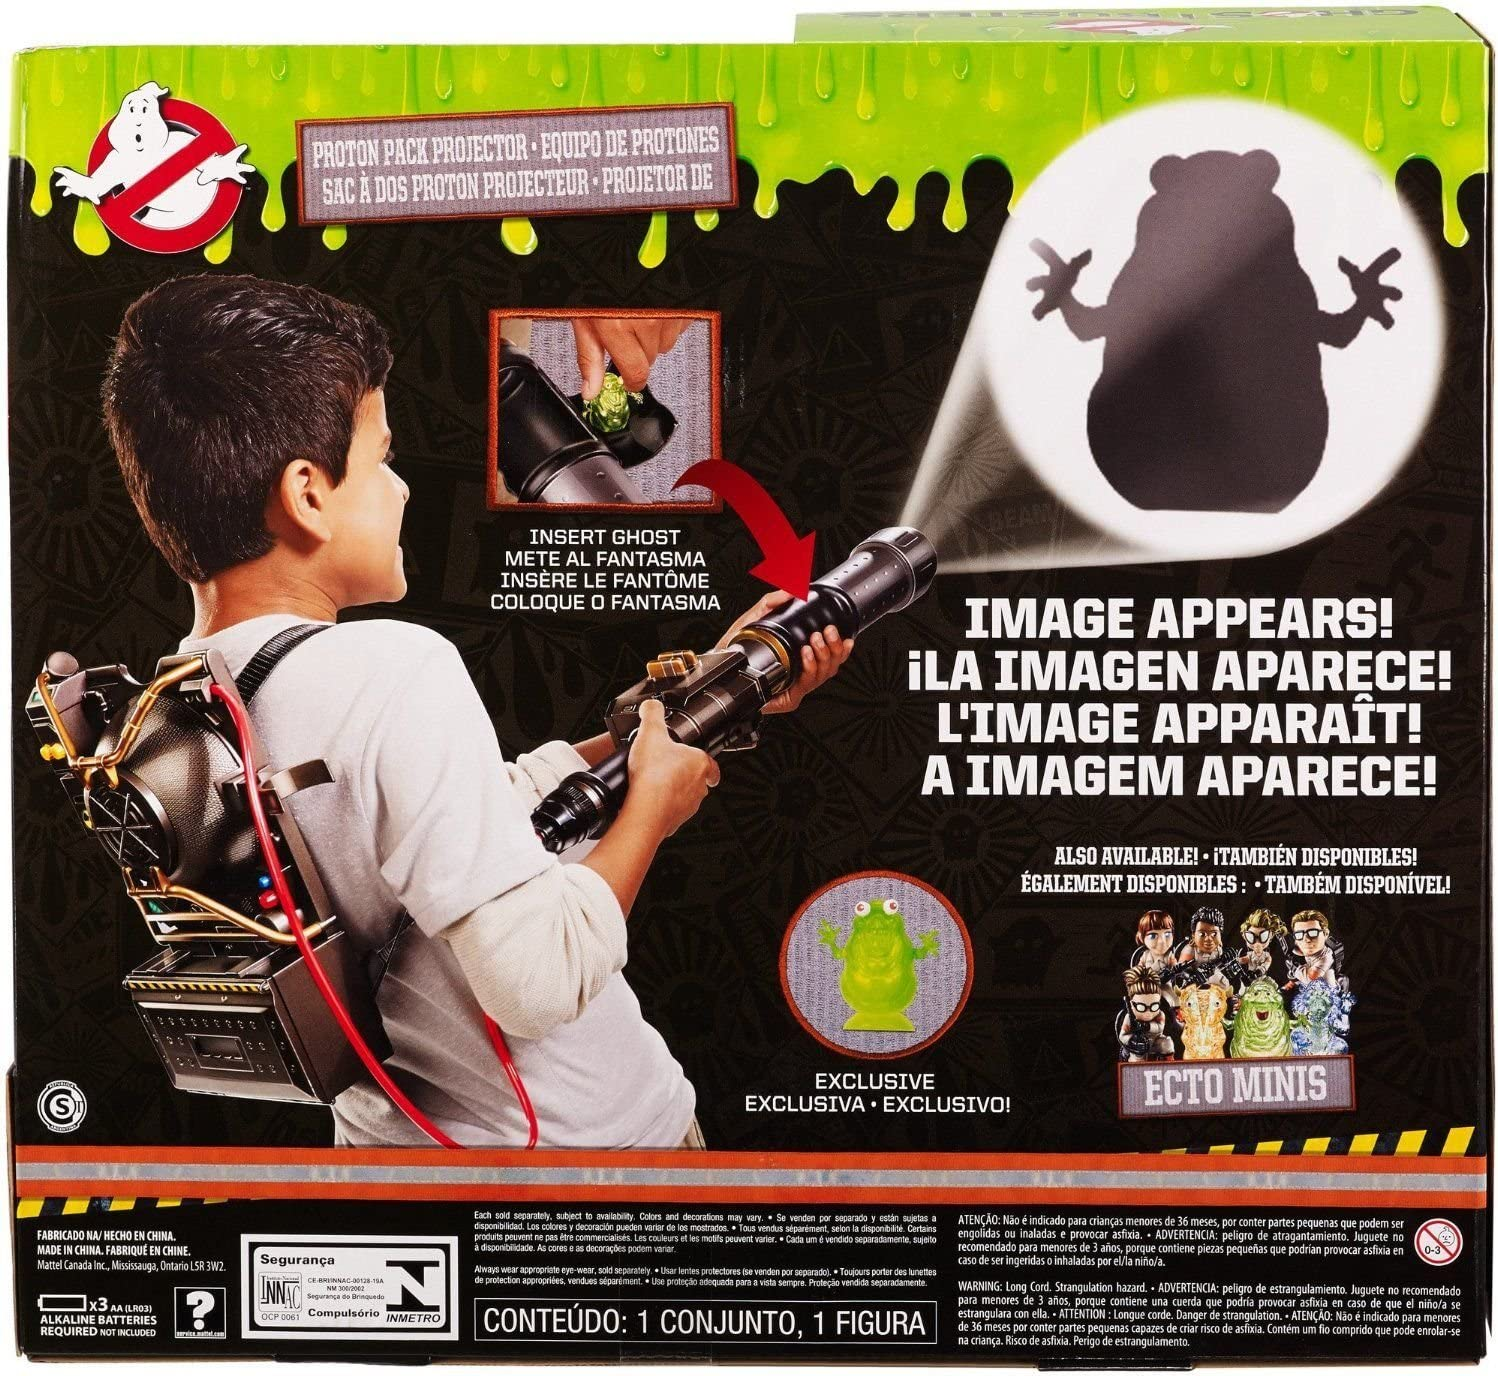 New Ghostbusters Electronic Proton Pack Projector (Colors/Styles May Vary) ^G#fbhre-h4 8rdsf-tg1327626